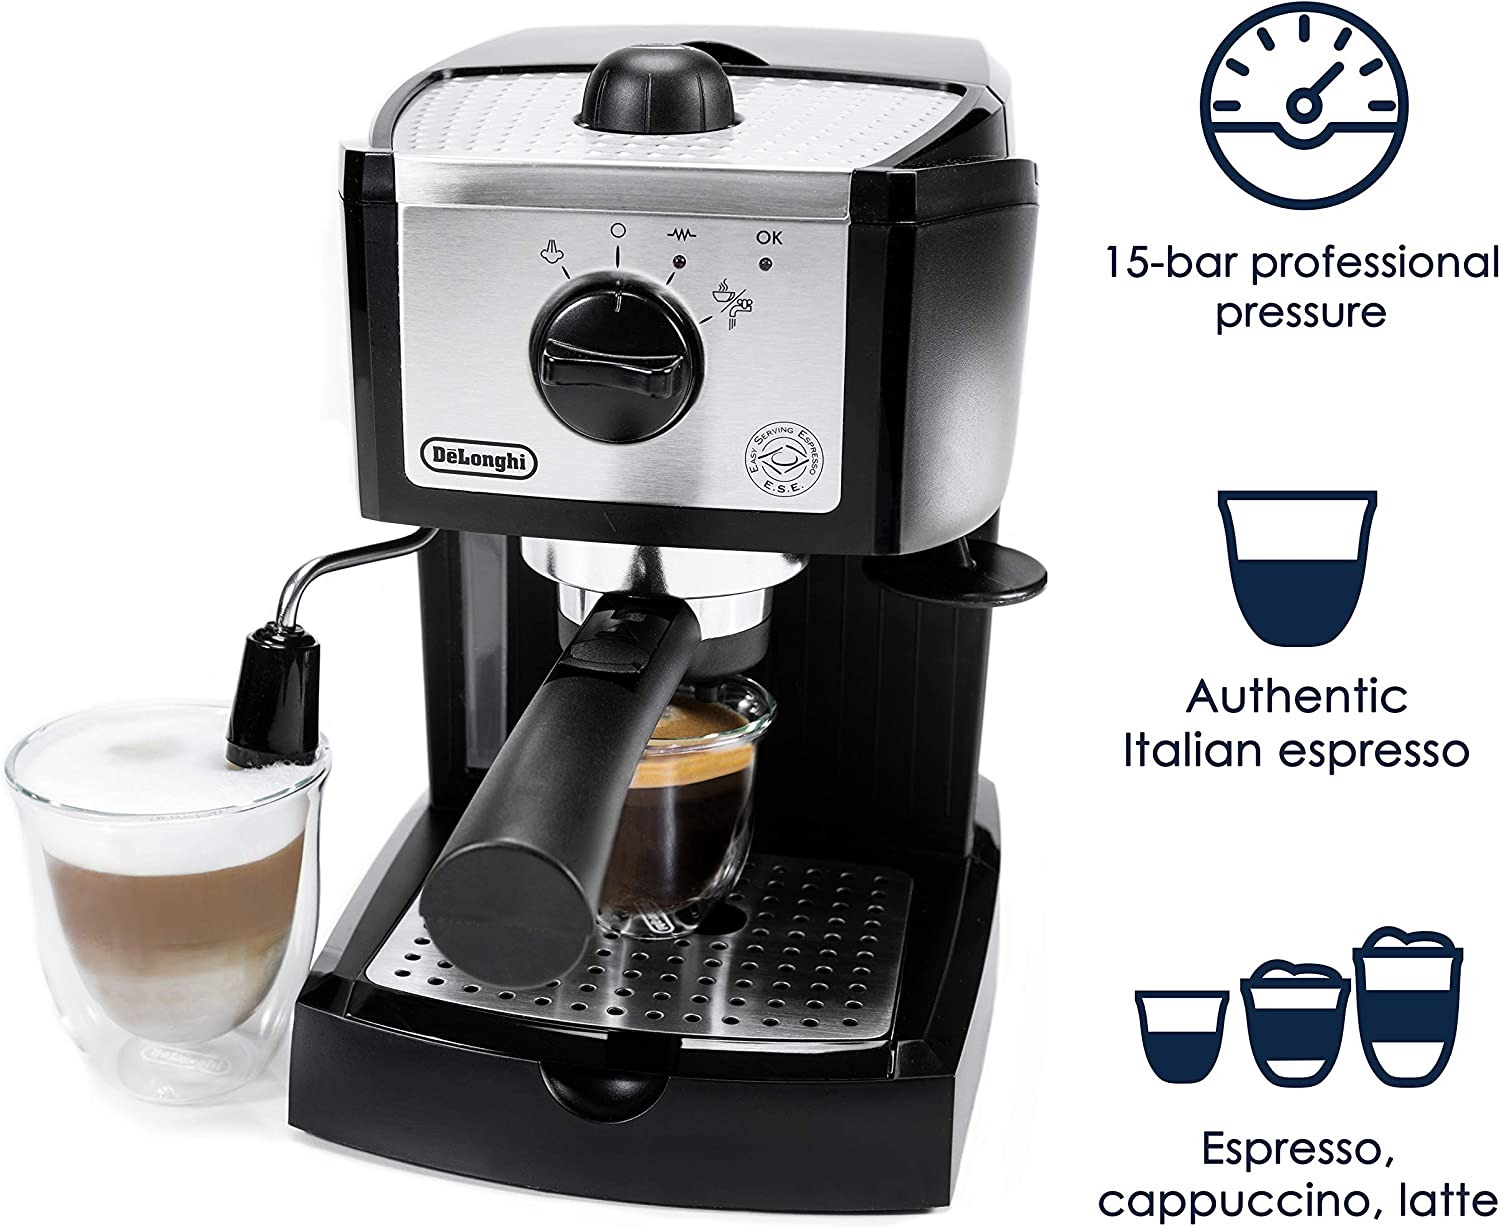 De'Longhi EC155 Espresso and Cappuccino Maker - capsule machine Amazon